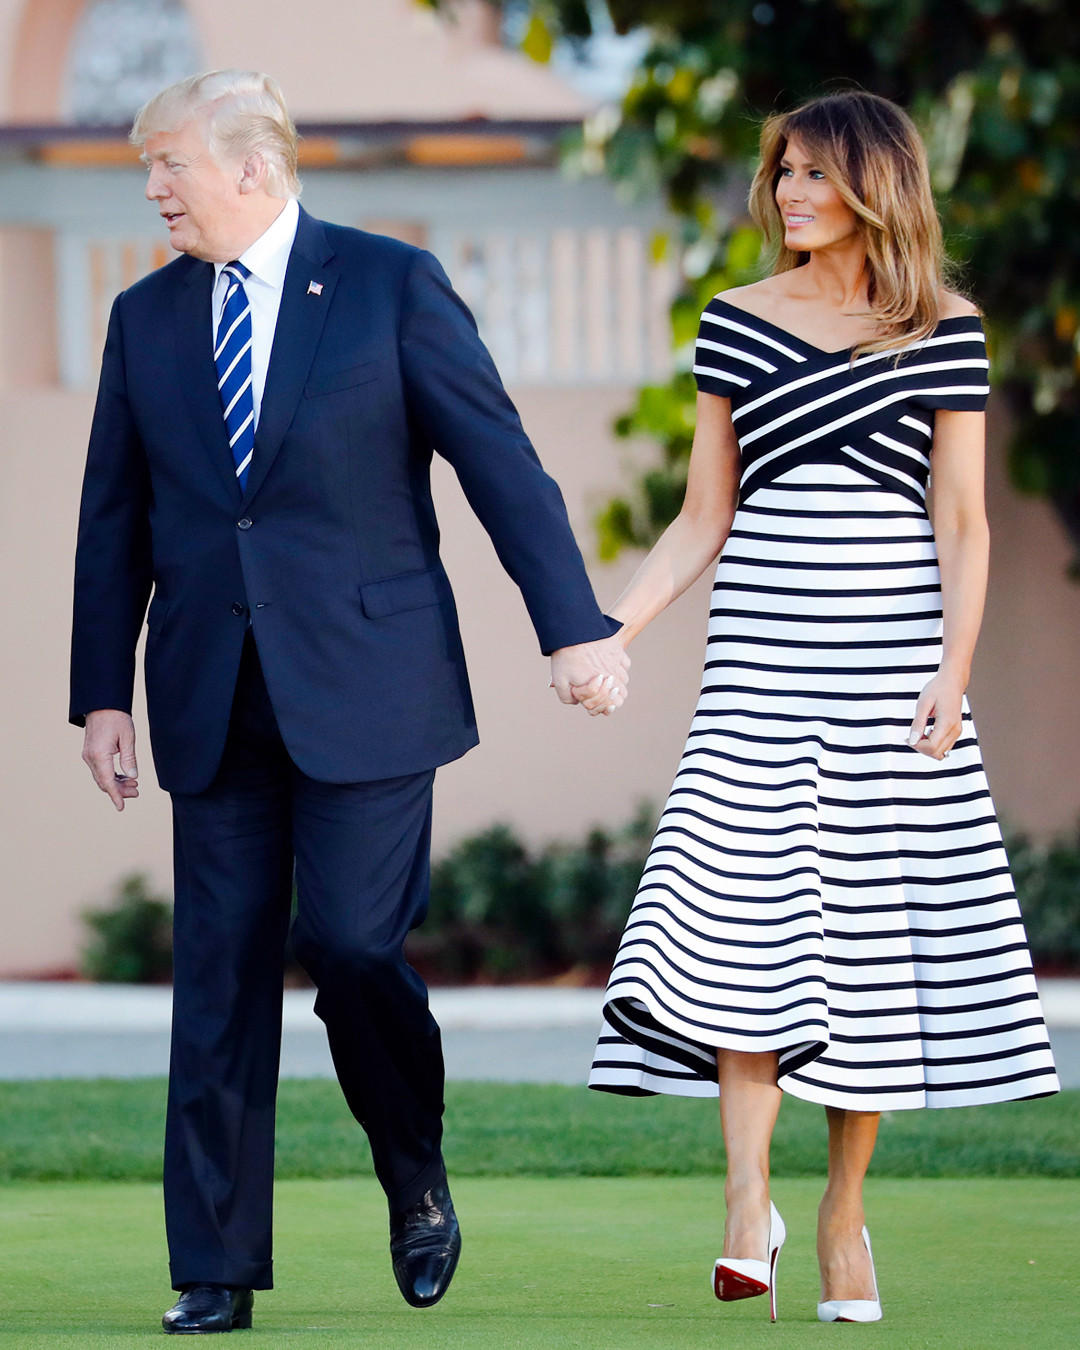 Melania and Donald Trump Match Outfits and More Celeb Couple Style